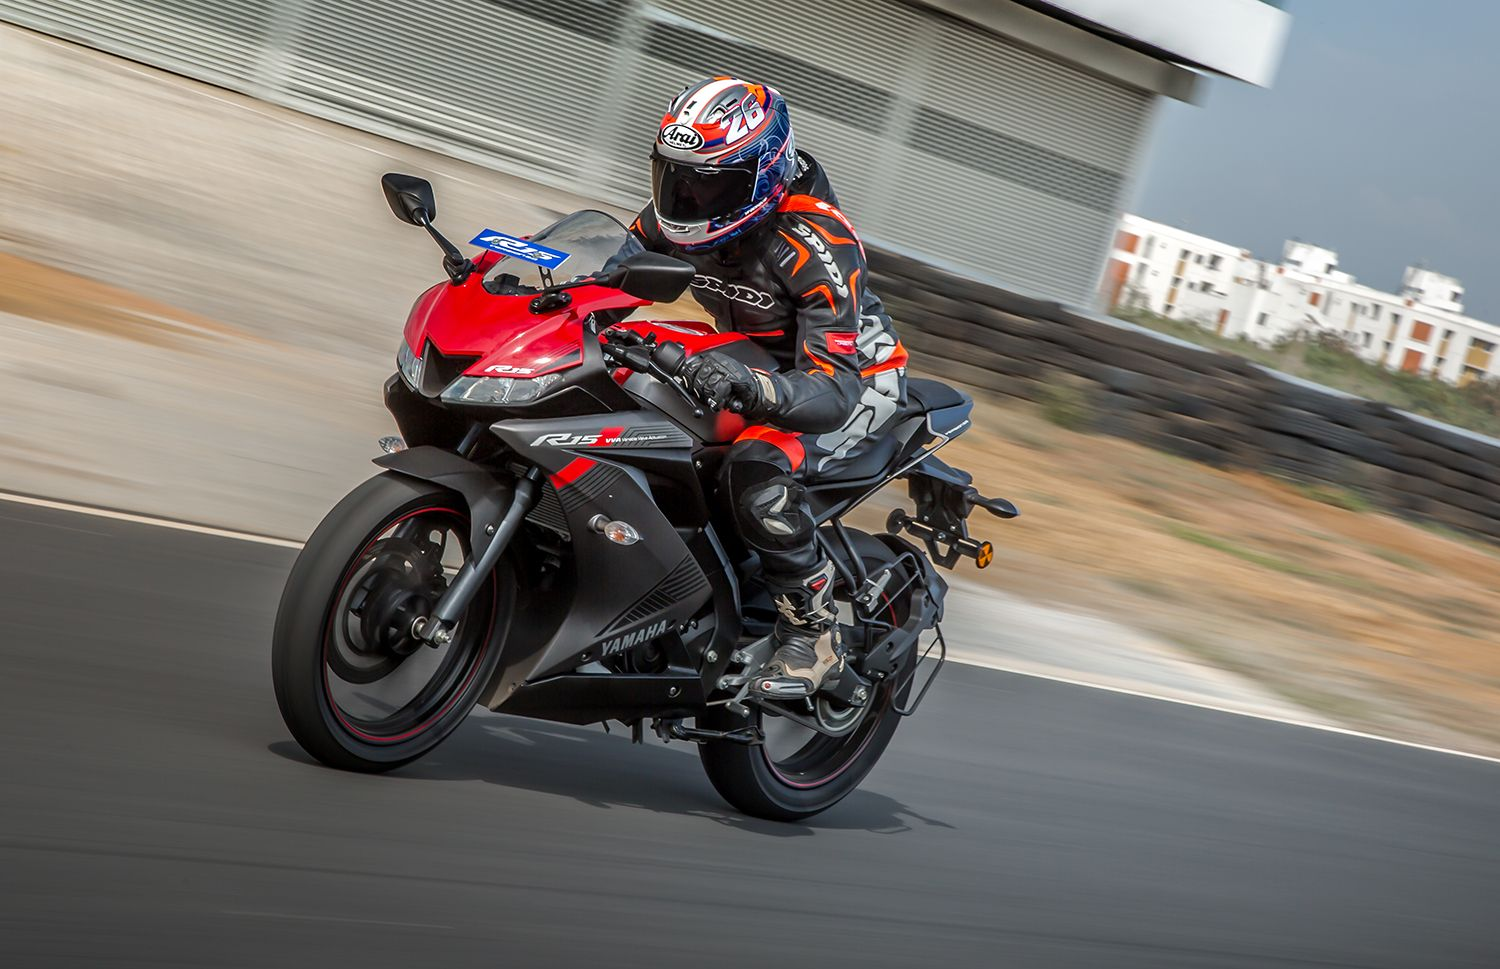 2018 Yamaha R15 v3.0 first ride review